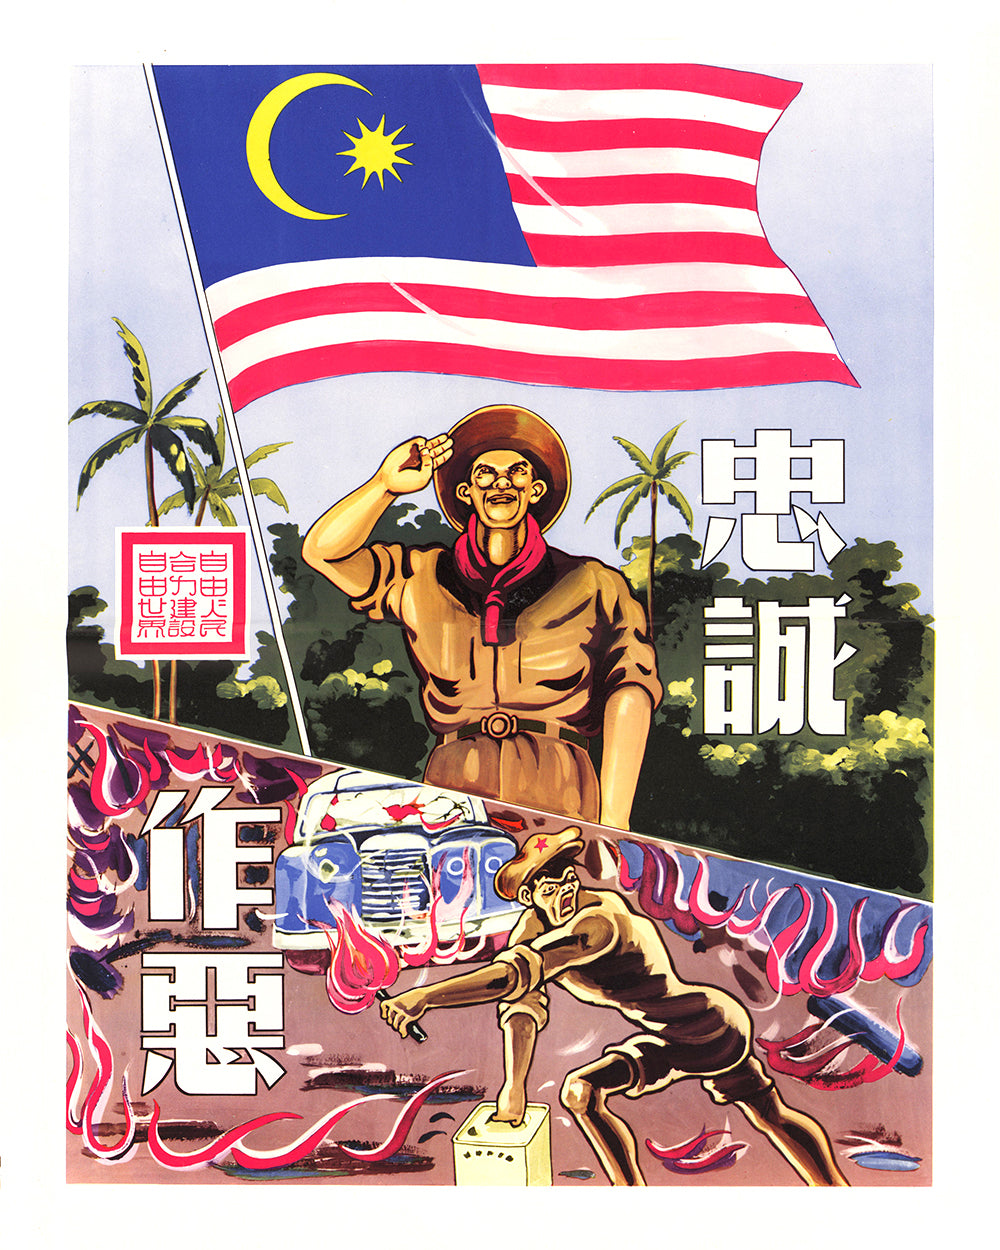 The free people shall work together towards a free world – Malayan poster